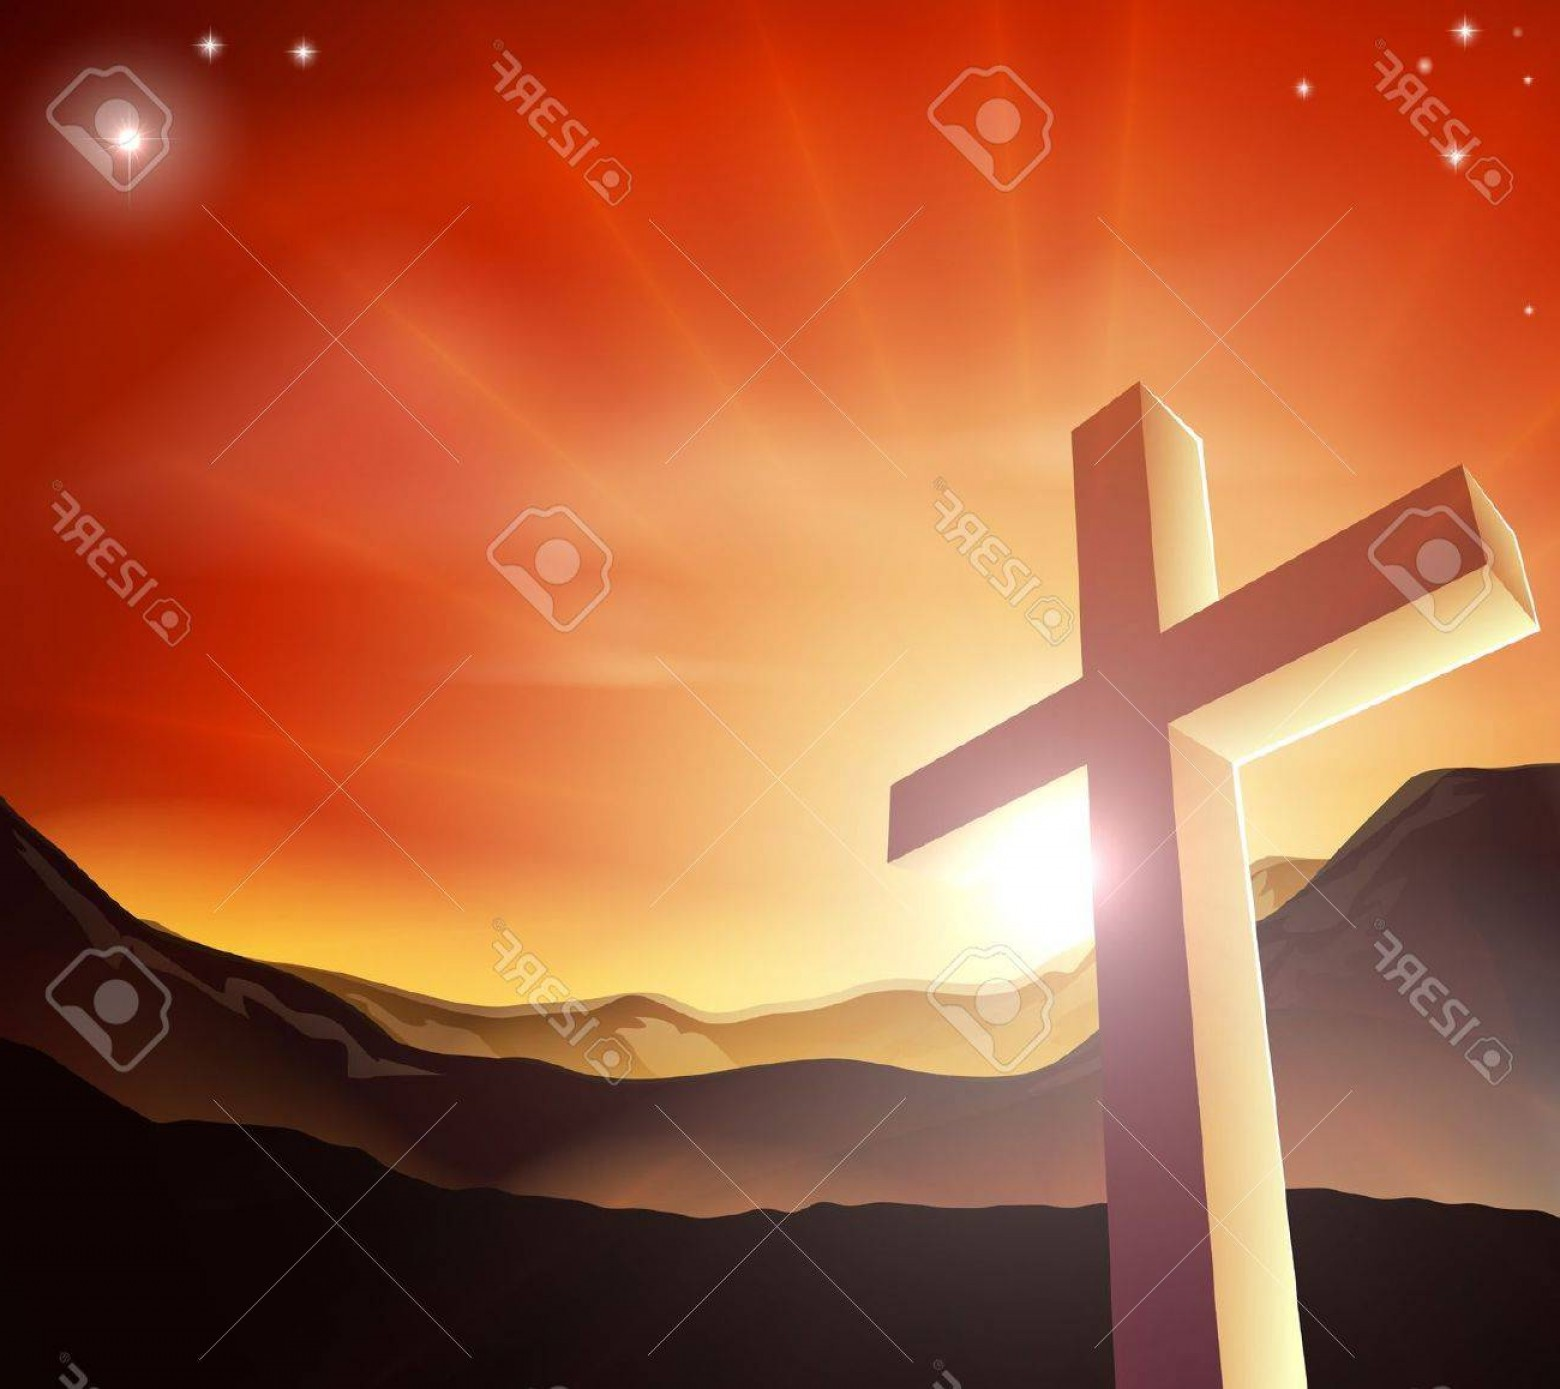 Christian Vector Sun: Photosun Rising Behind The Cross Over A Mountain Range Resurrection Christian Easter Concept